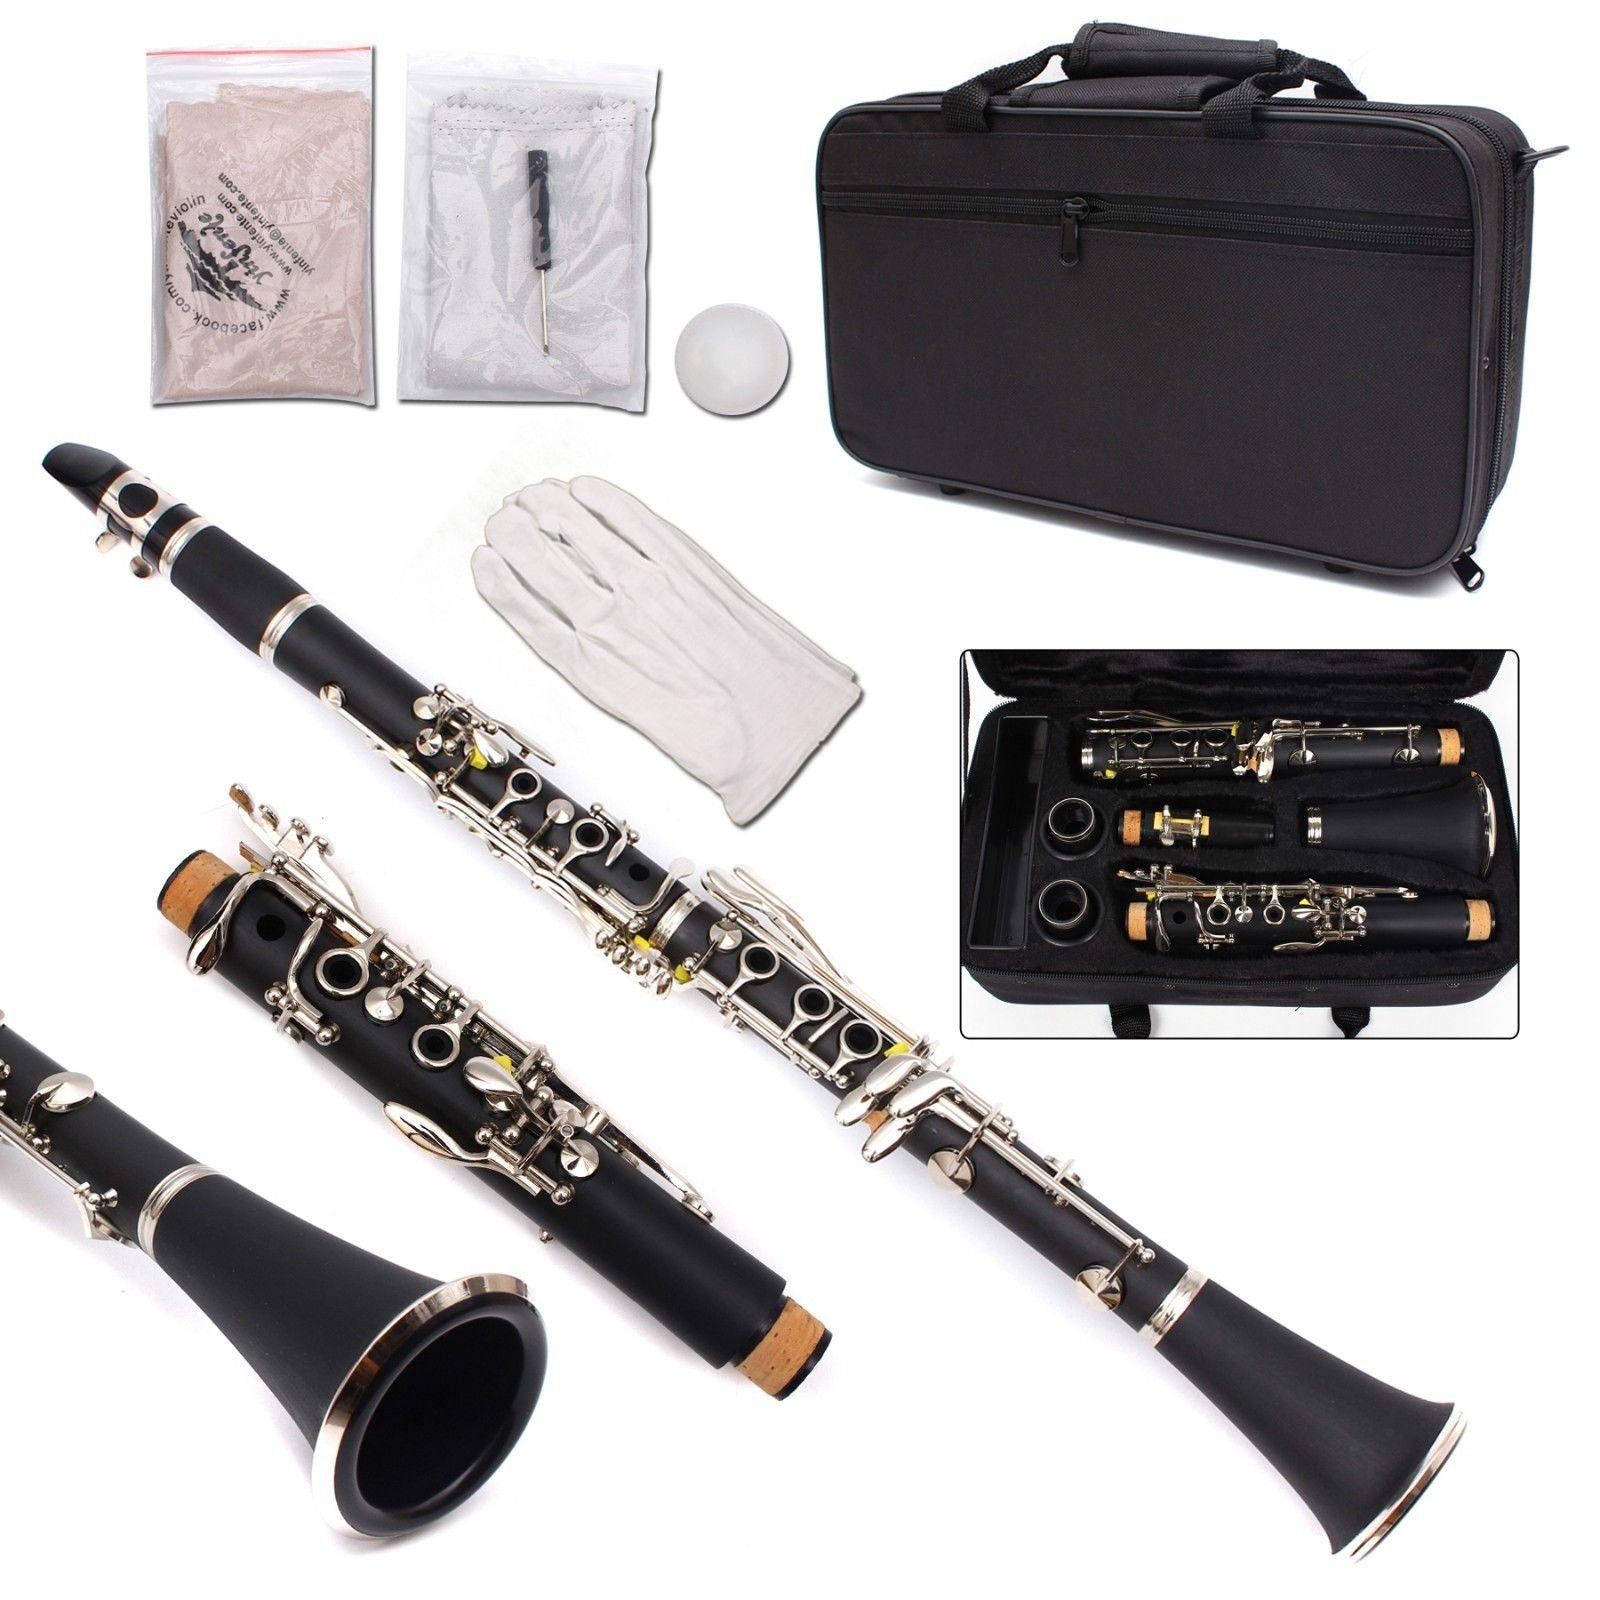 New Professional Clarinet Ebonite Wood Nickel Plated Key Bb Key 17 key Case #7 silver plated double french horn f bb 4 key brand new with case